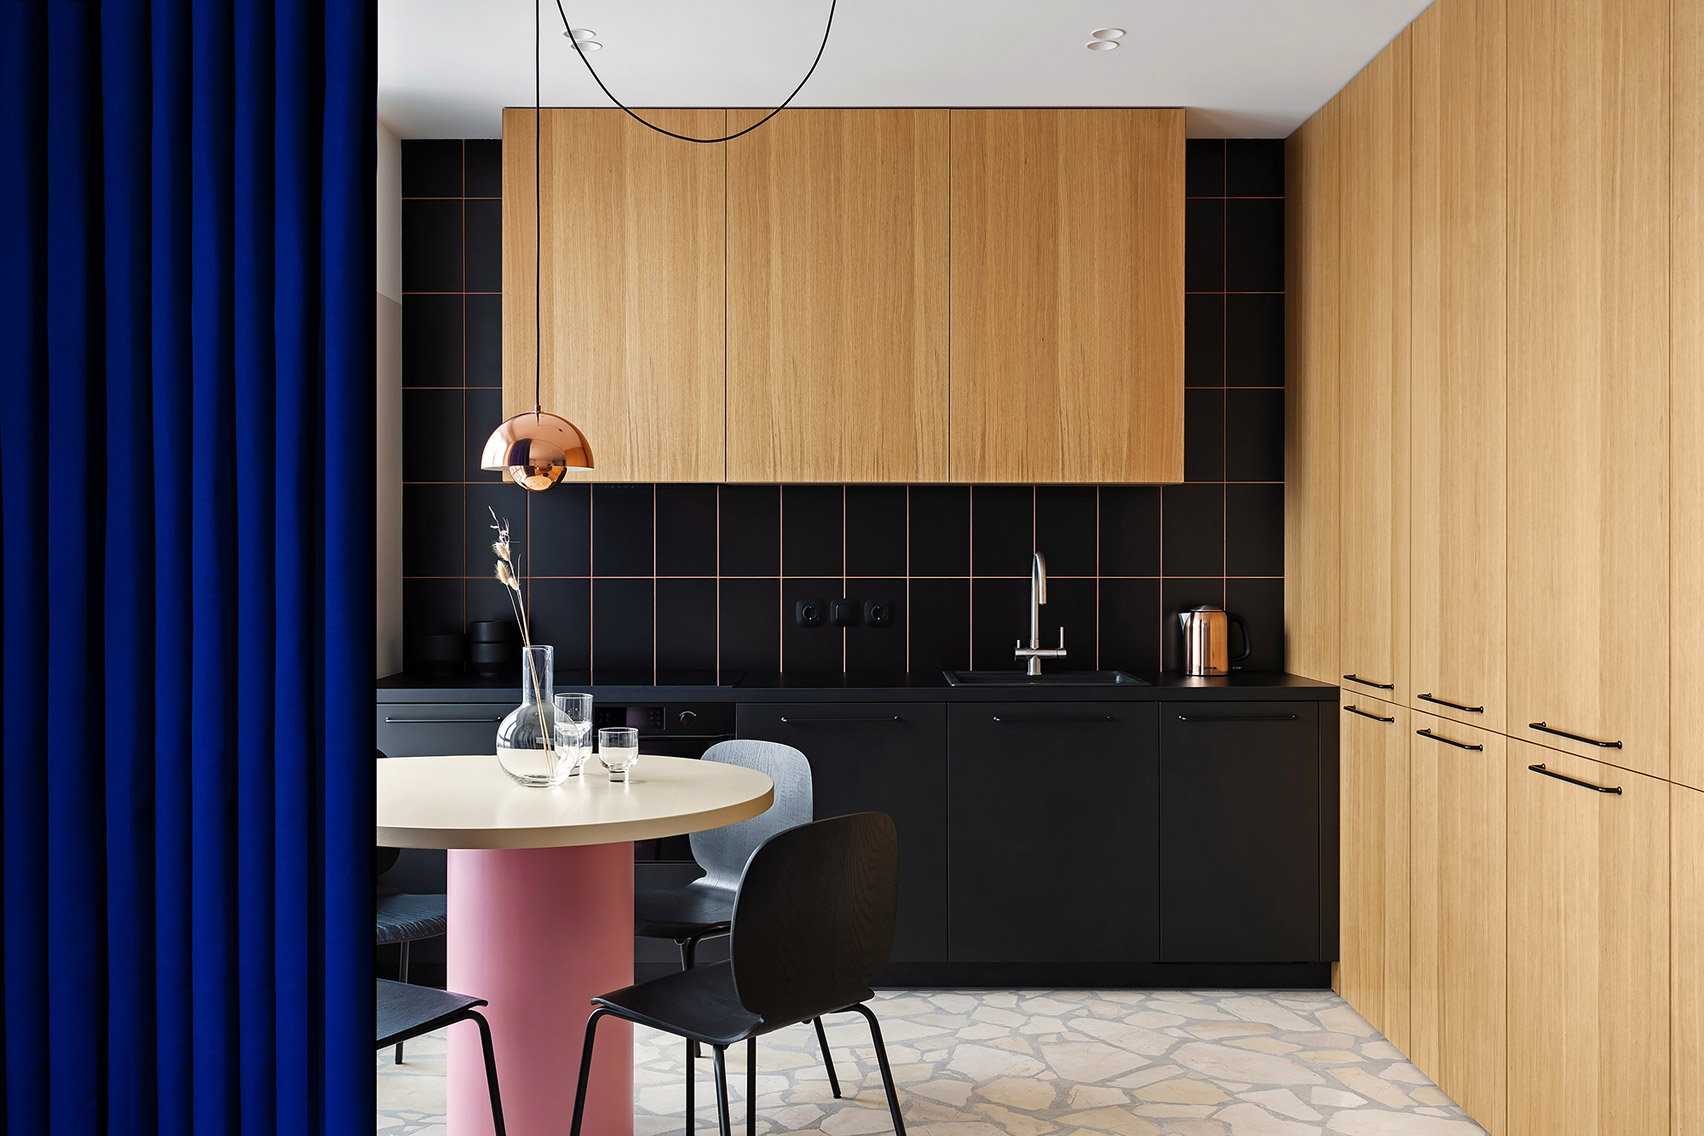 Kitchen with black and pink backsplash separated by blue curtain.